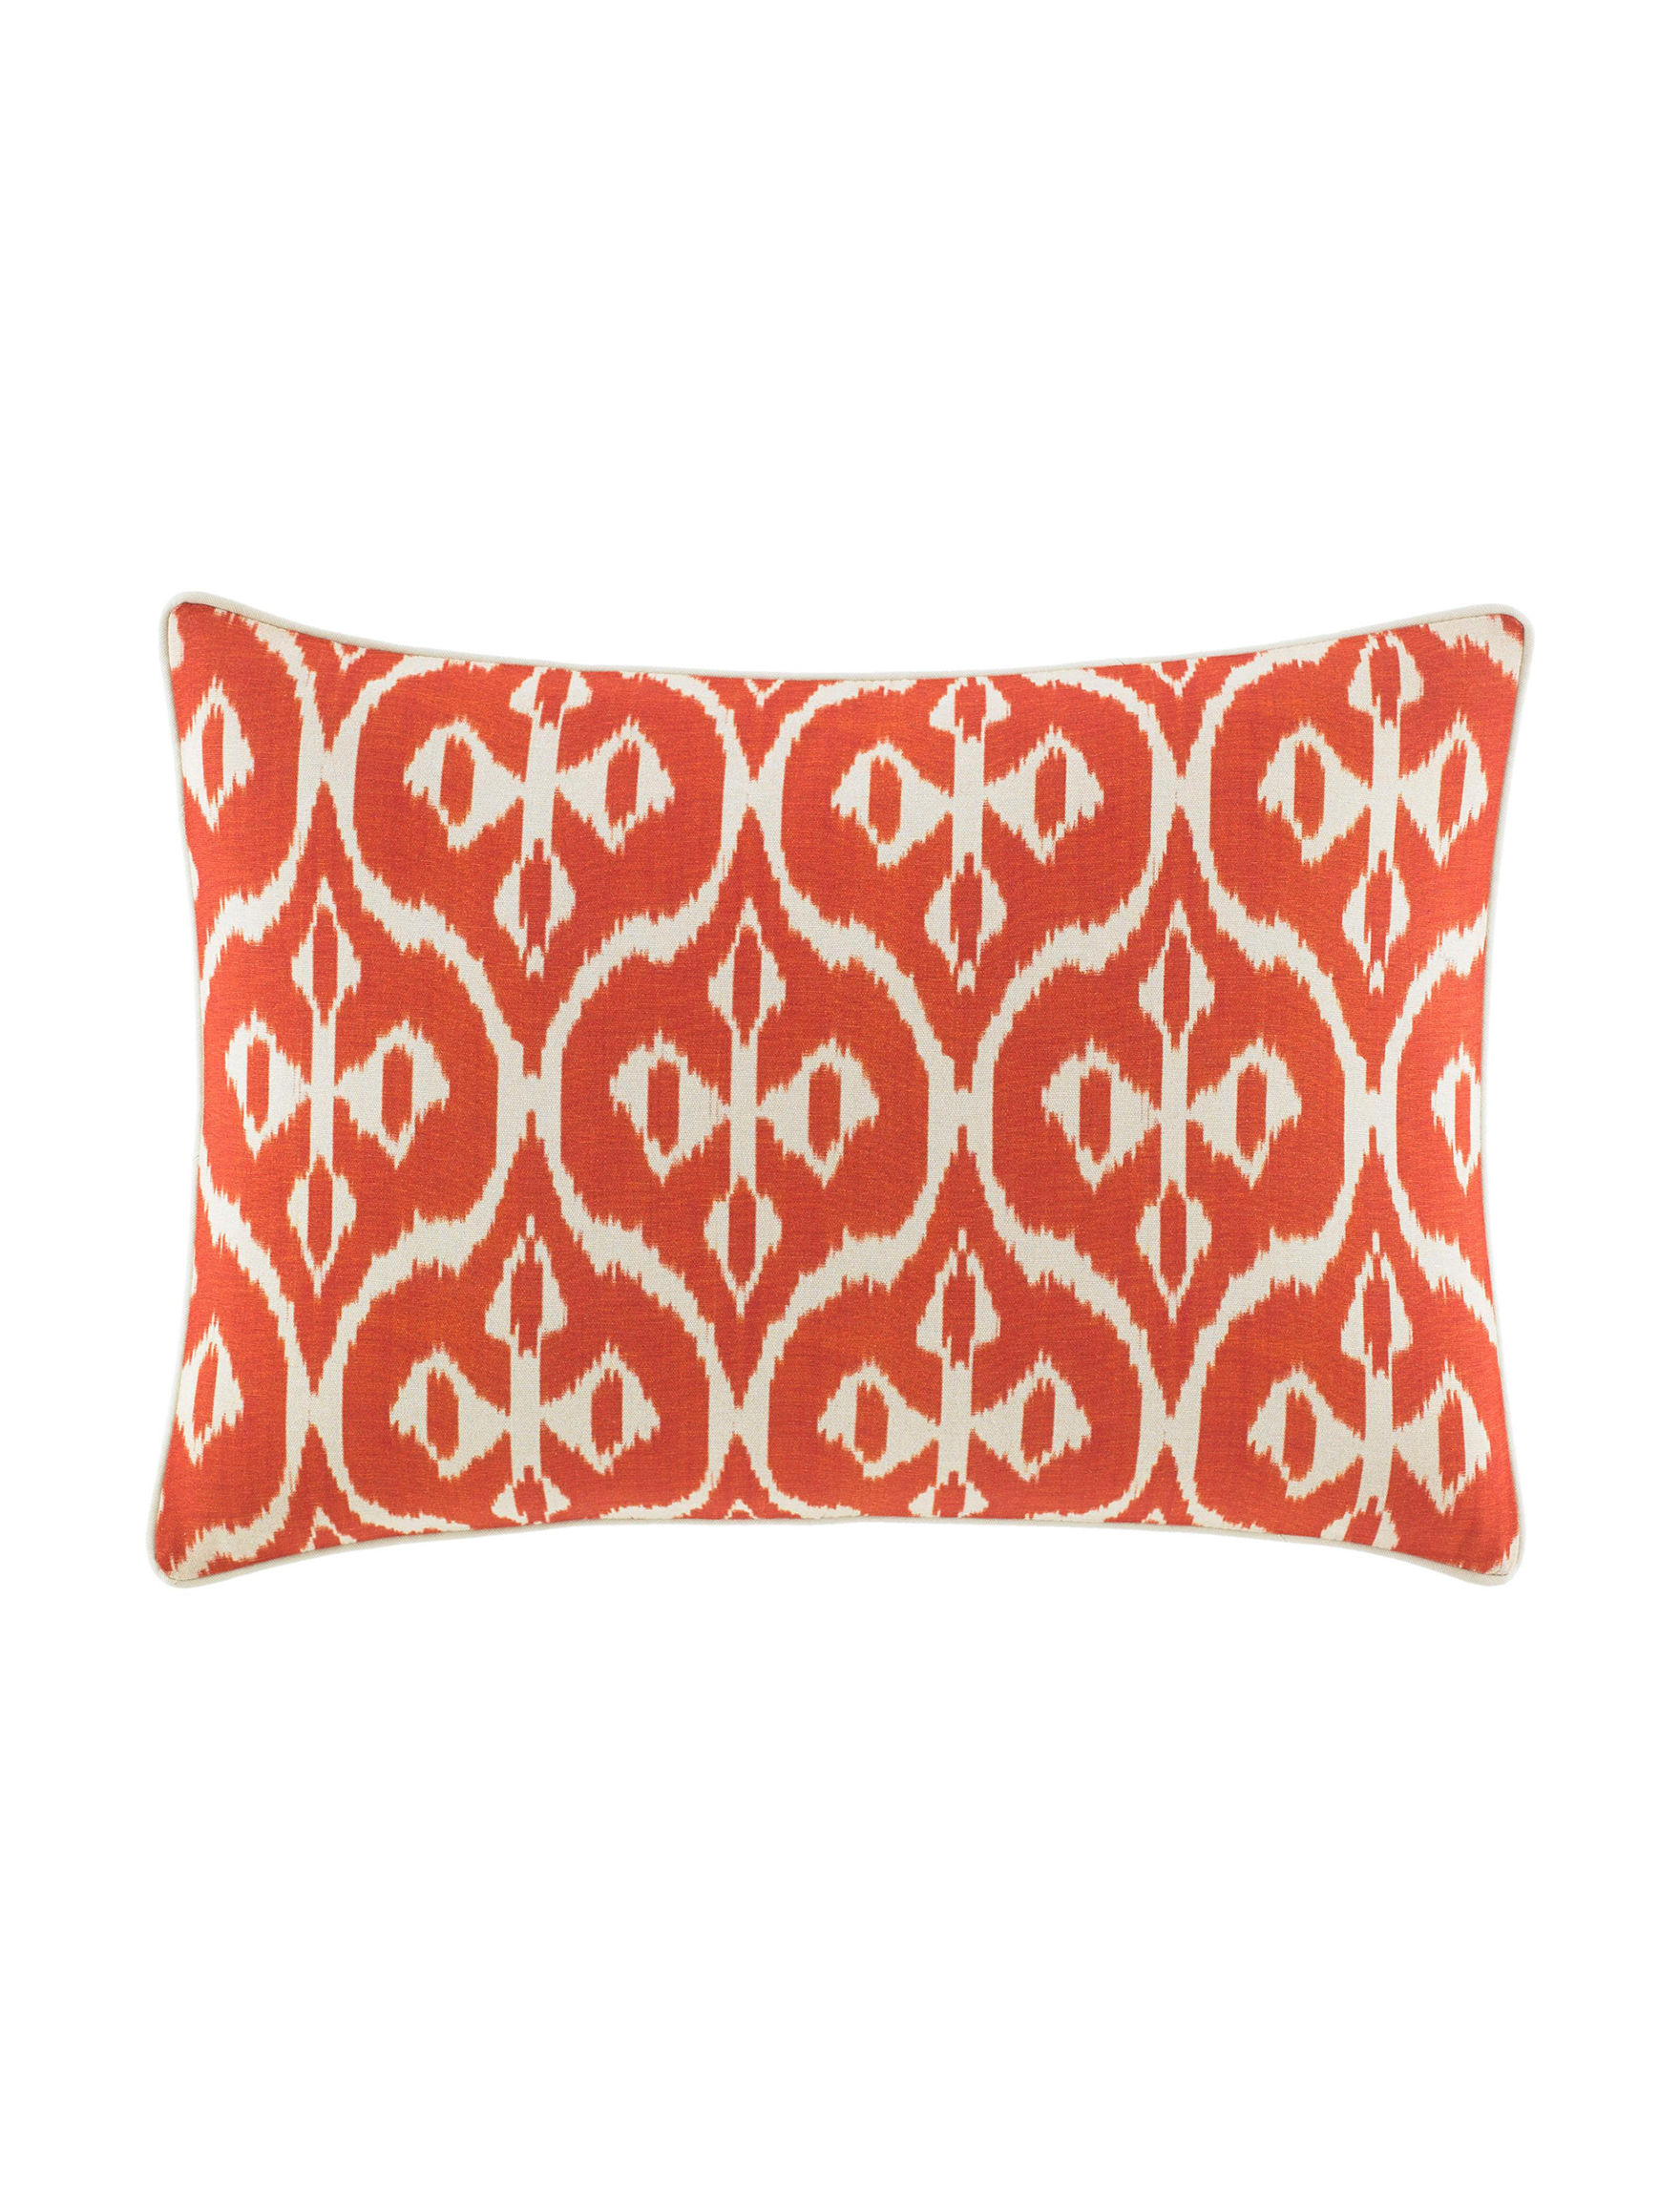 Tommy Bahama Red Decorative Pillows